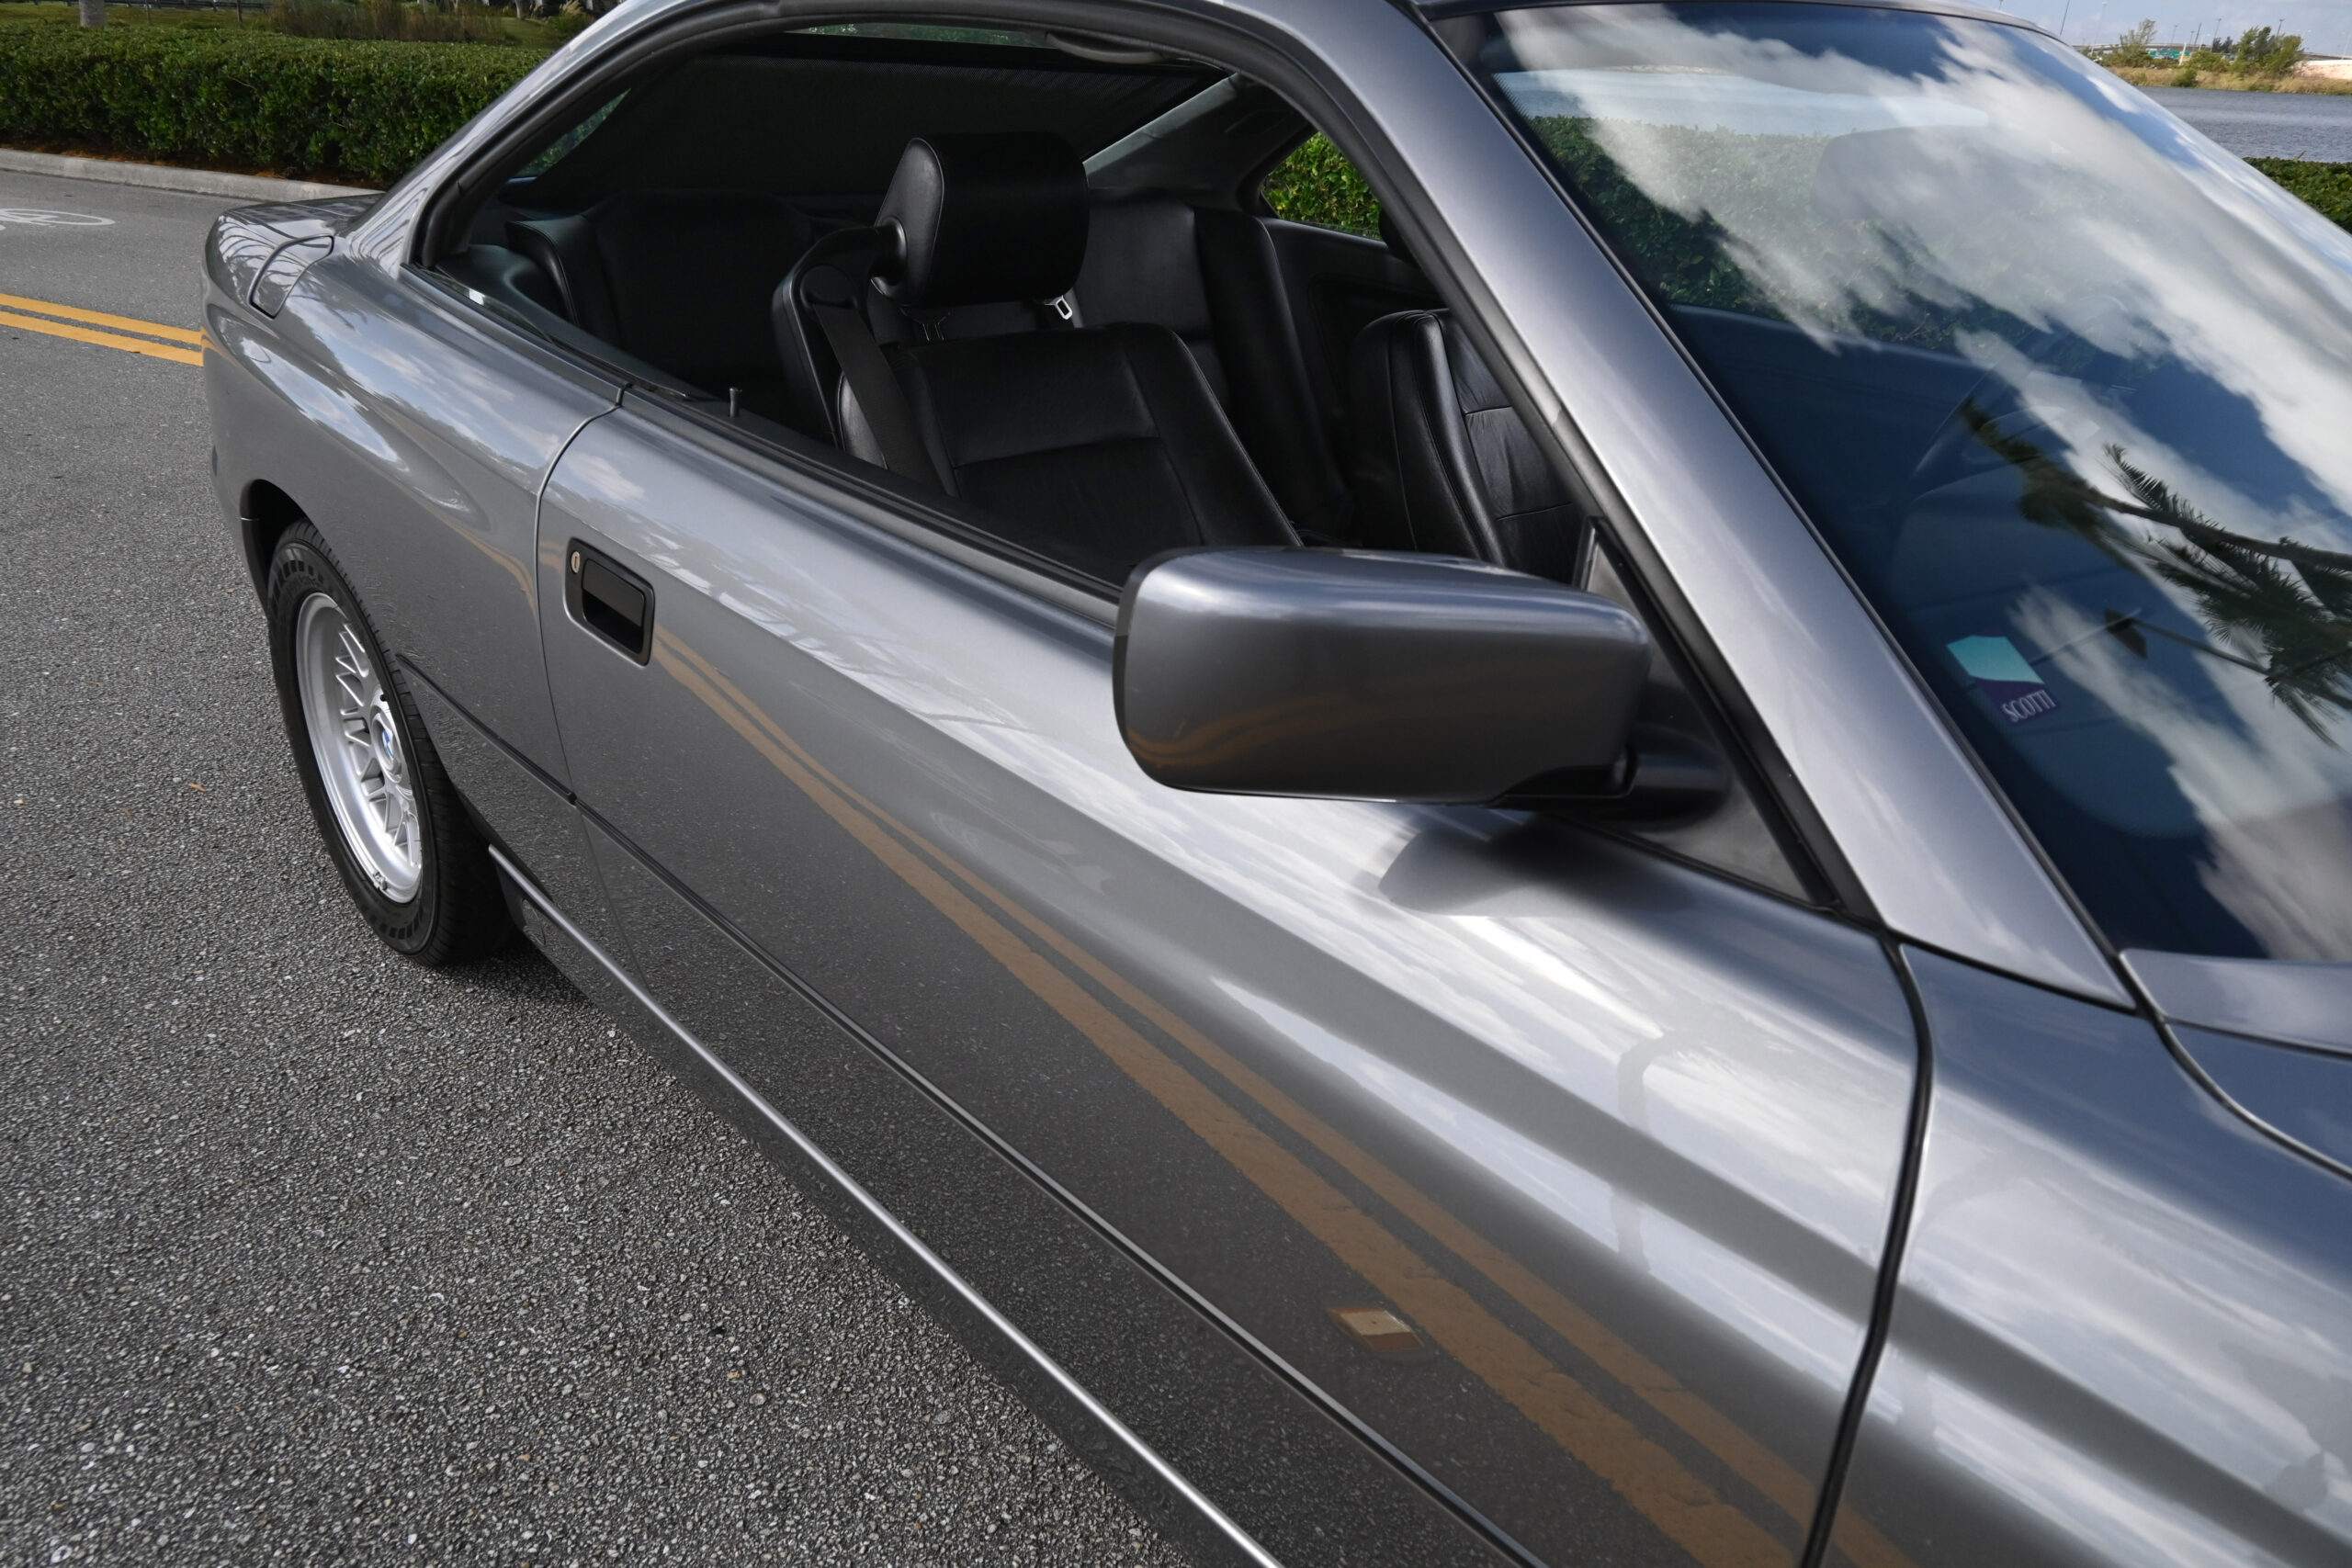 1991 BMW 850i, rare 6-speed, RoW vehicle, one of 427 Granite Silver E31s ever made, Sports Exhaust, cold A/C